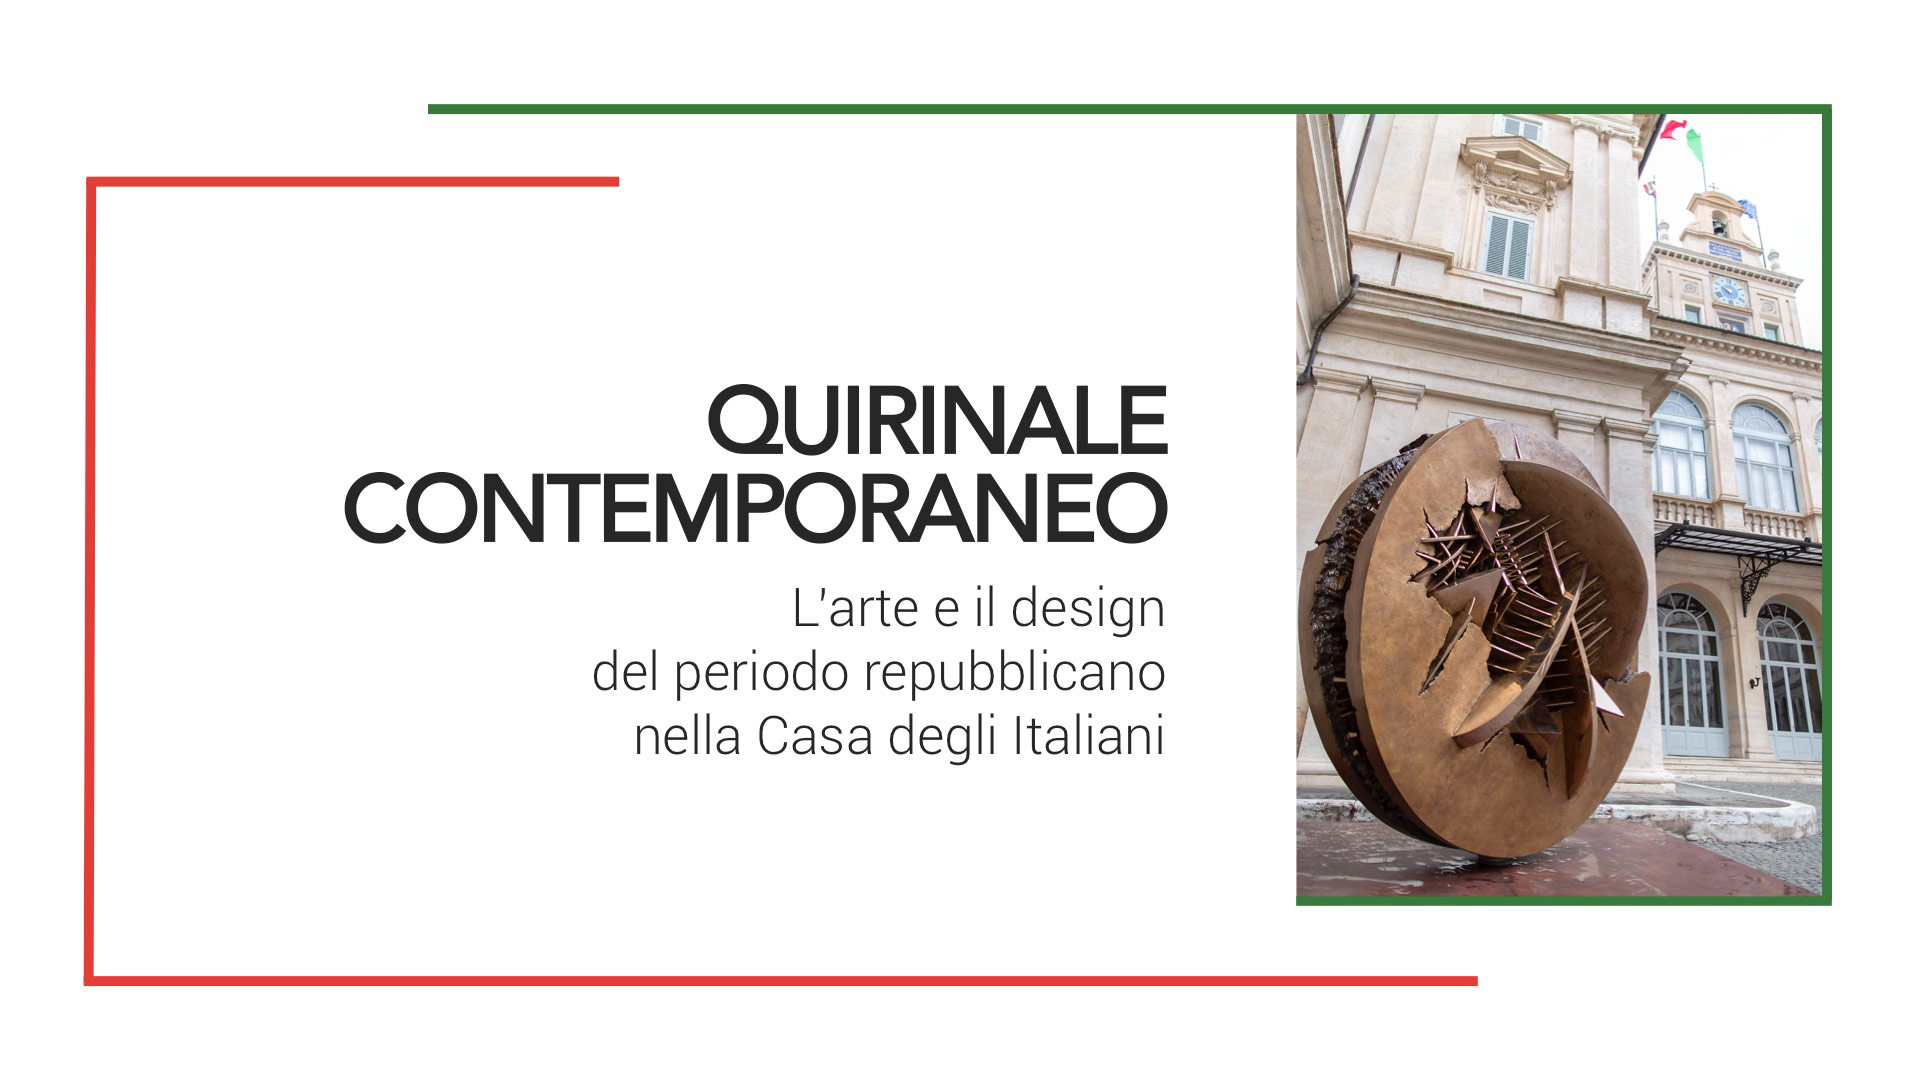 Atollo and Zanuso by Oluce among work selected for the show Quirinale Contemporaneo